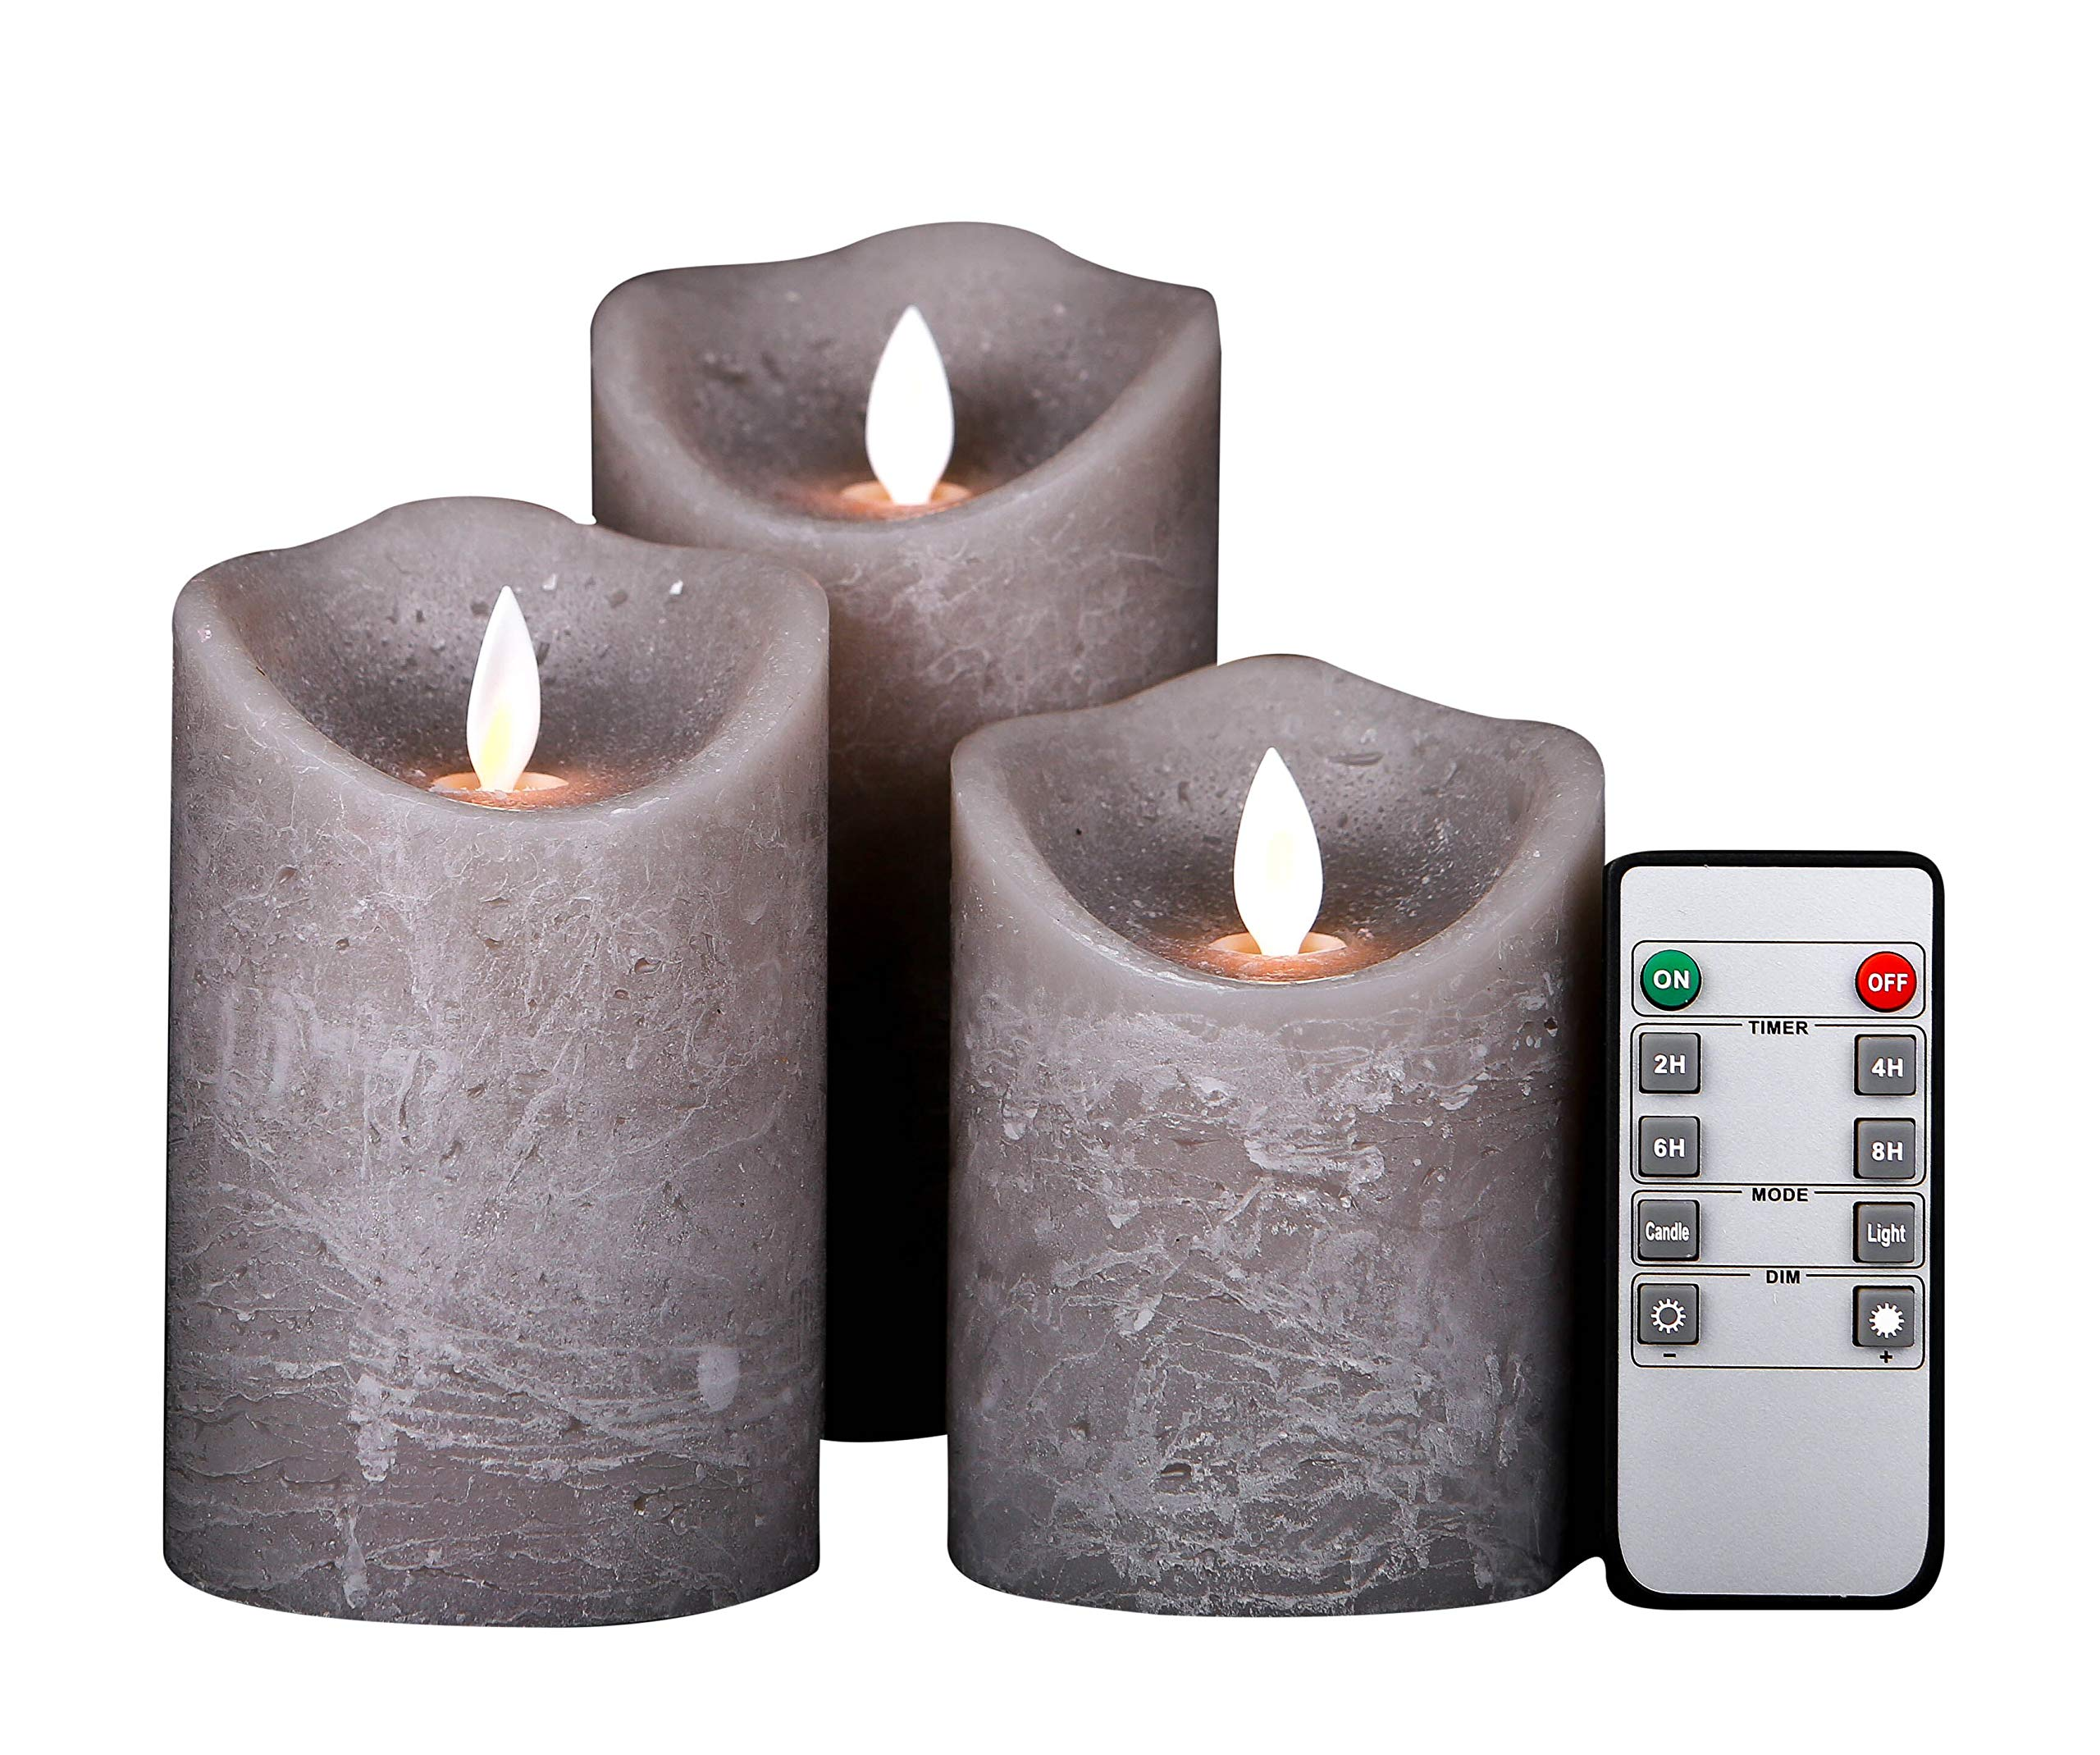 Kitch Aroma Marble Grey Color flameless candles 3 x 4/5/6inch Battery Operated LED Pillar Candles with Moving Flame Wick and Timer,Wave Top